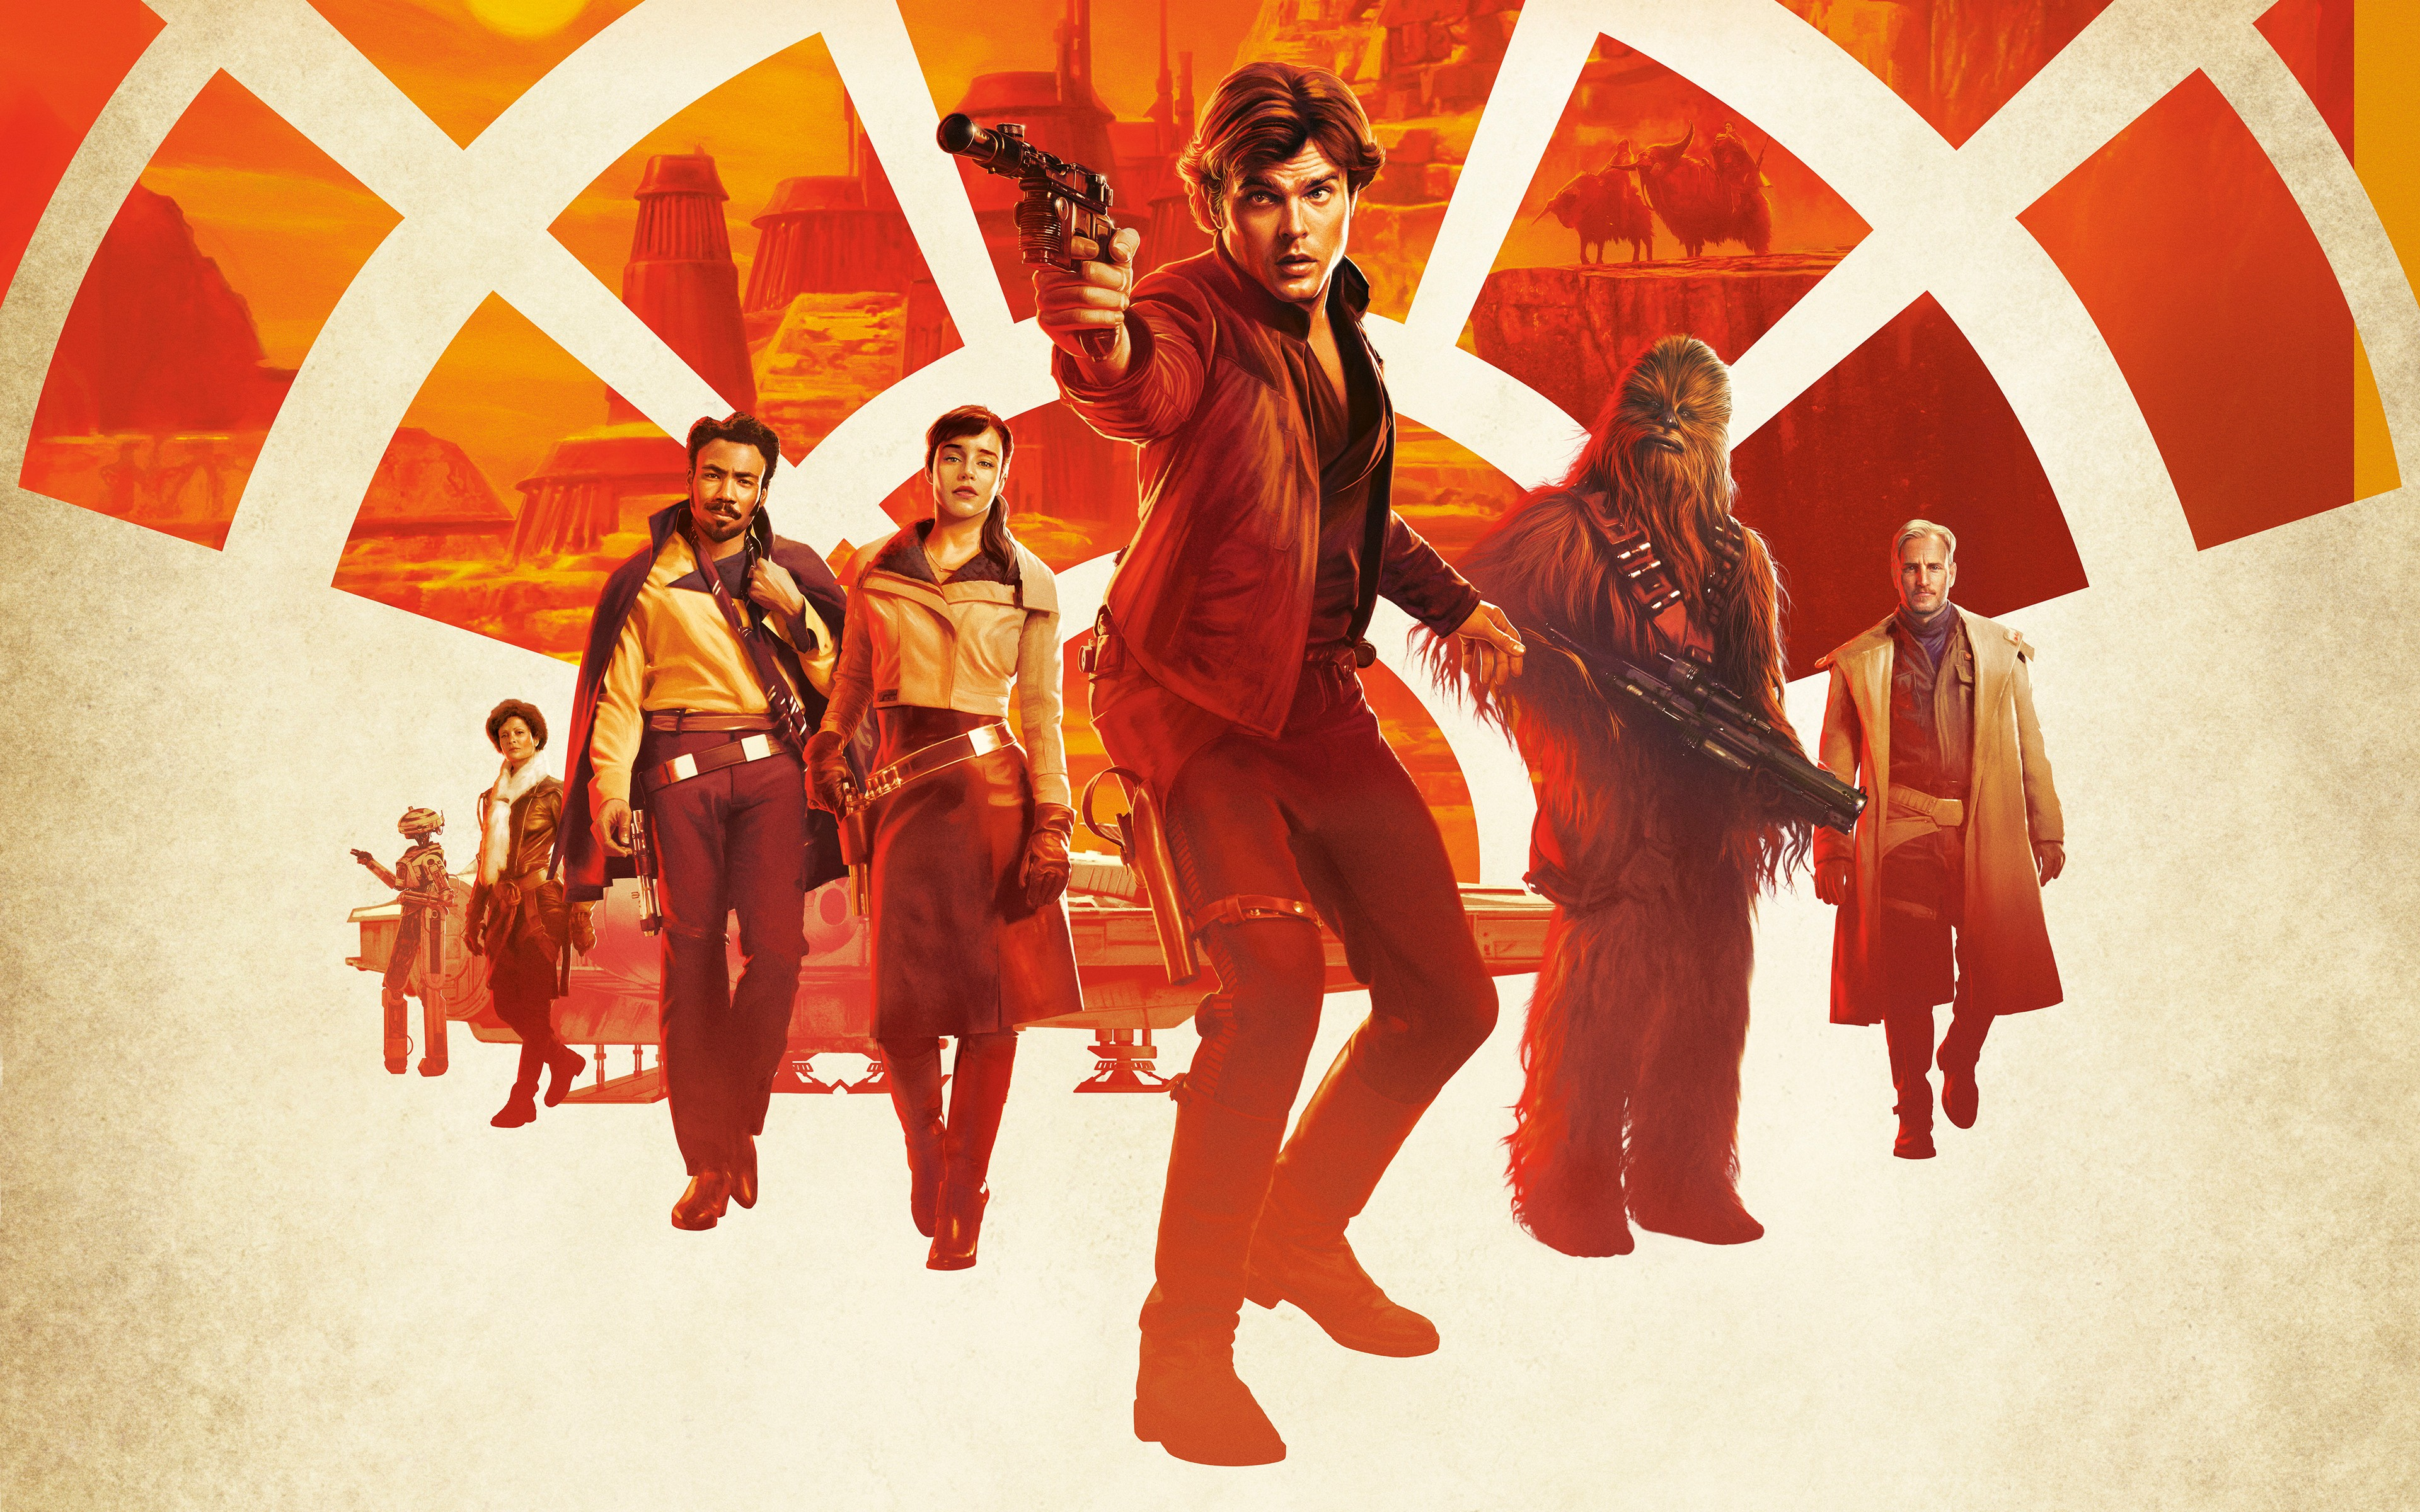 Solo A Star Wars Story Movie Poster Wallpaper